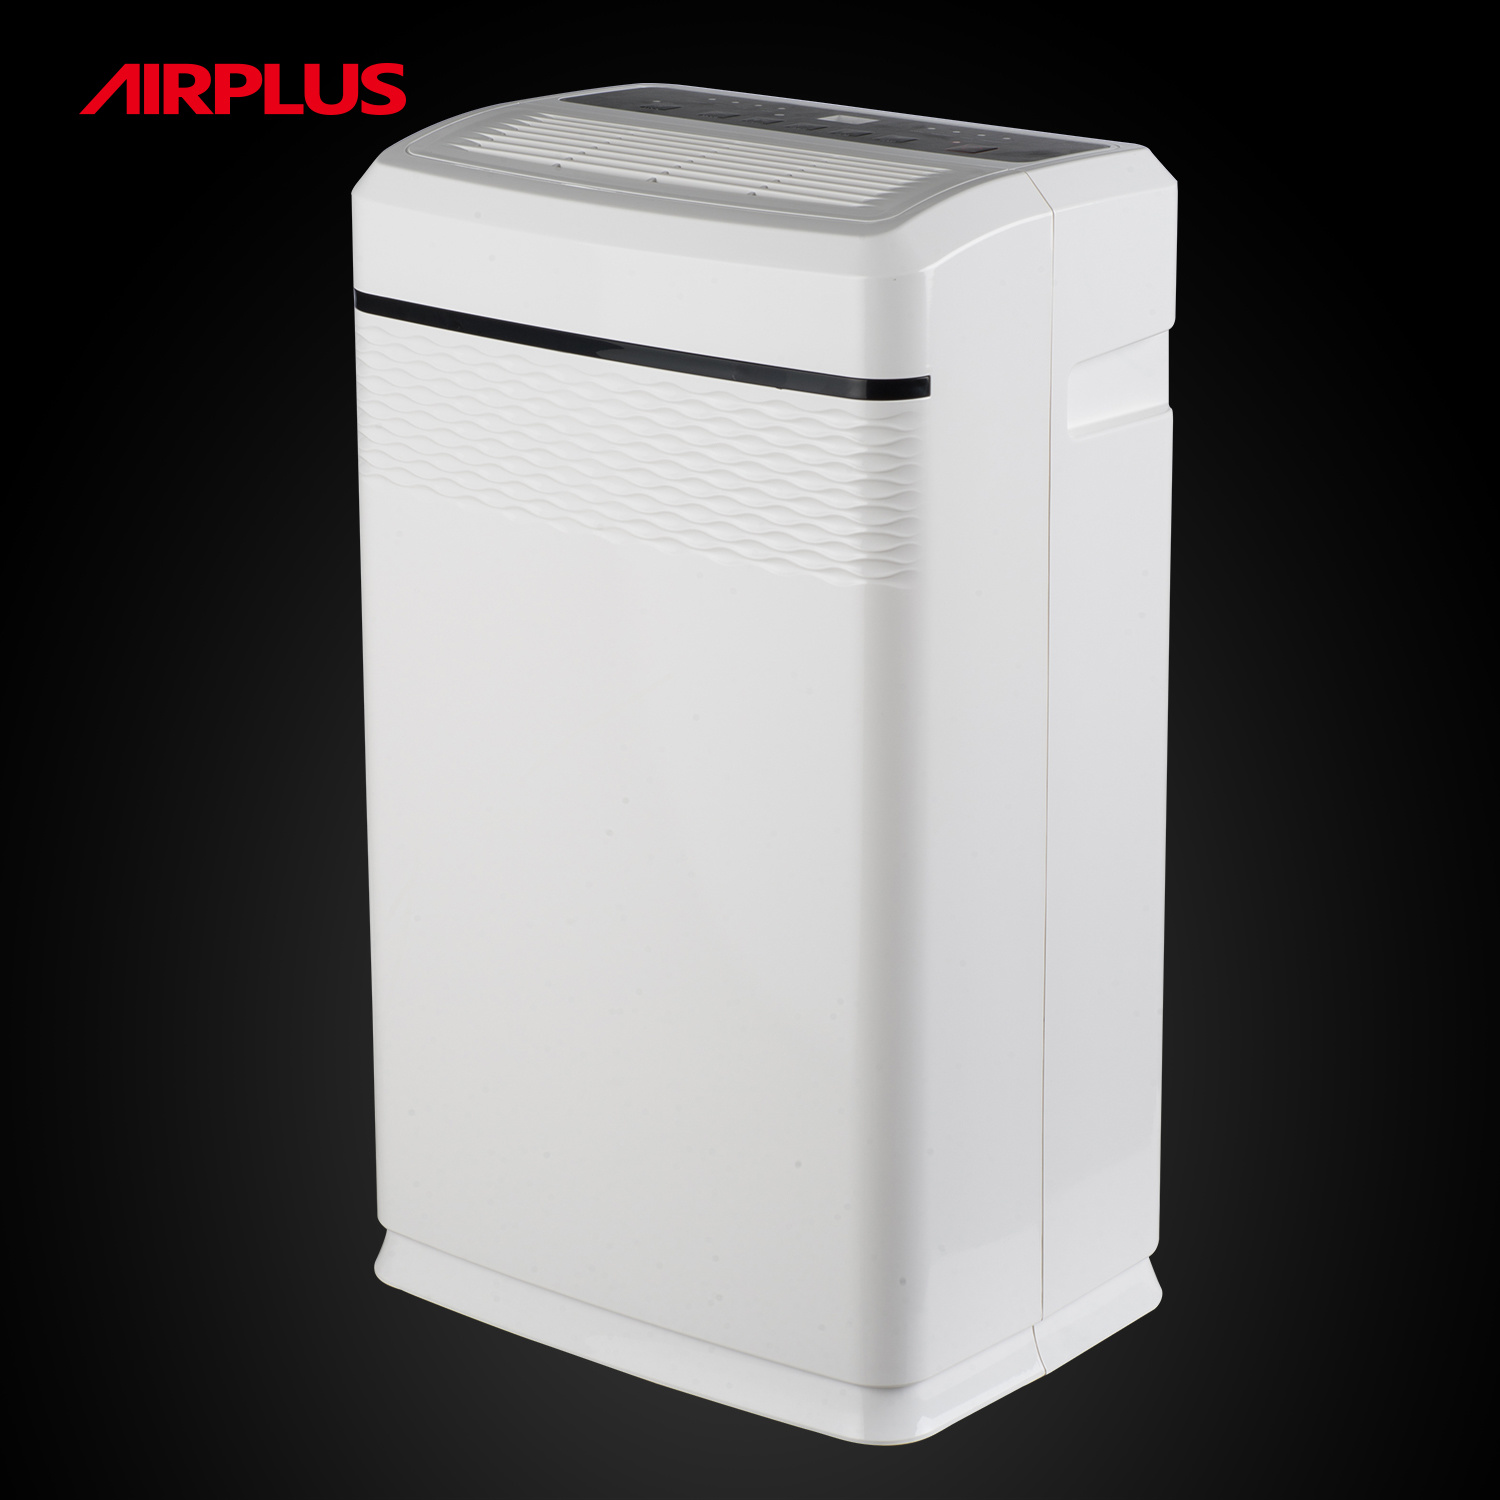 Defrost Automatically Portable Dehumidifier with HEPA Filter